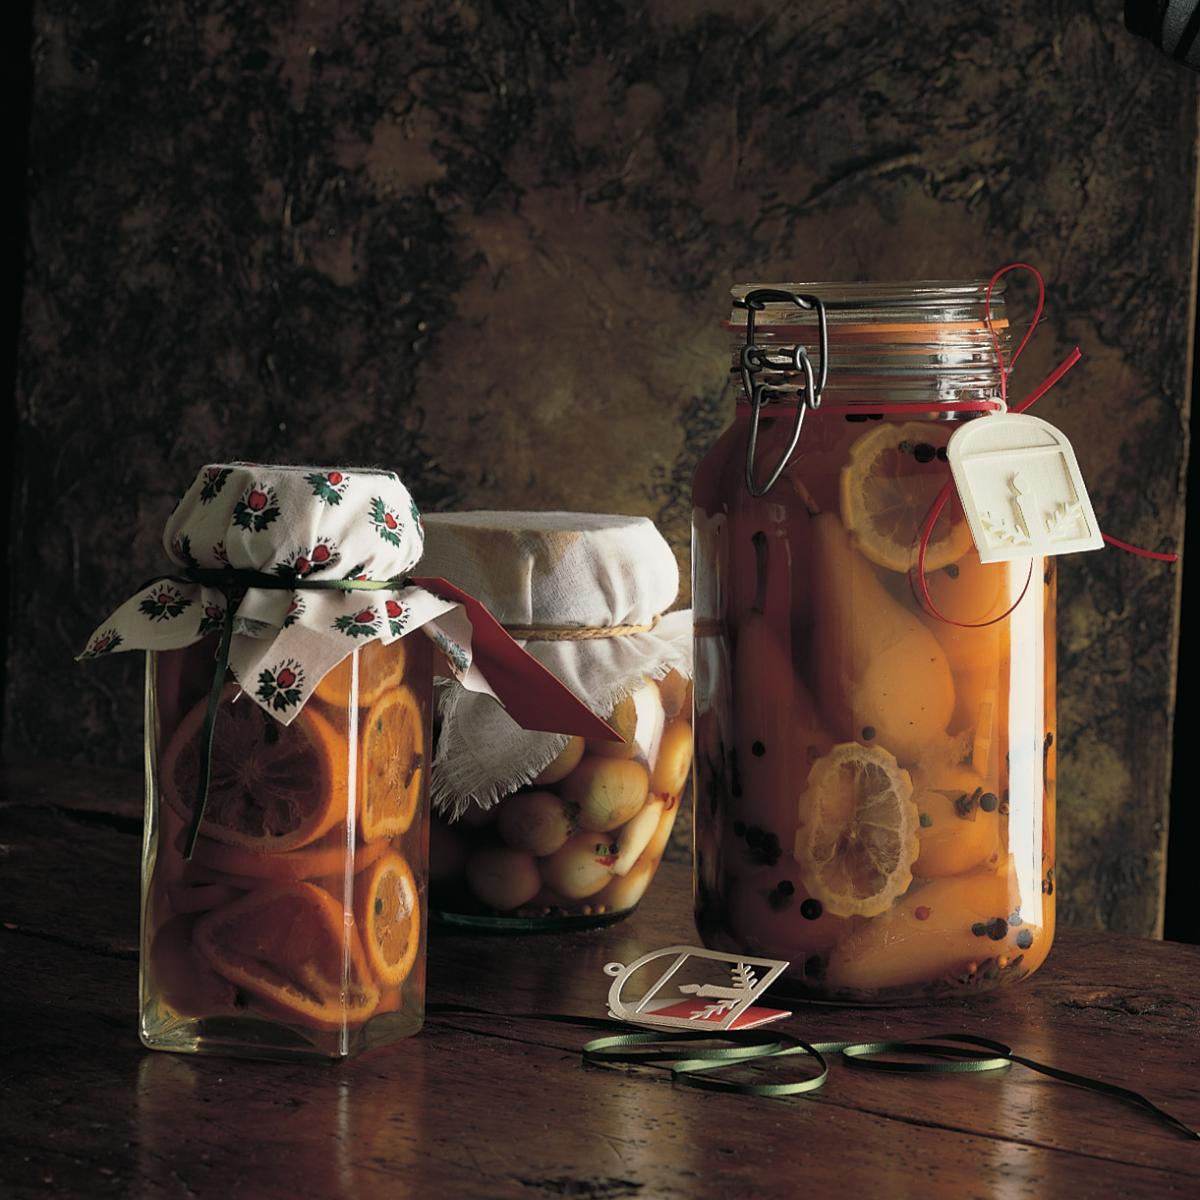 A picture of Delia's Preserves how to cook guides